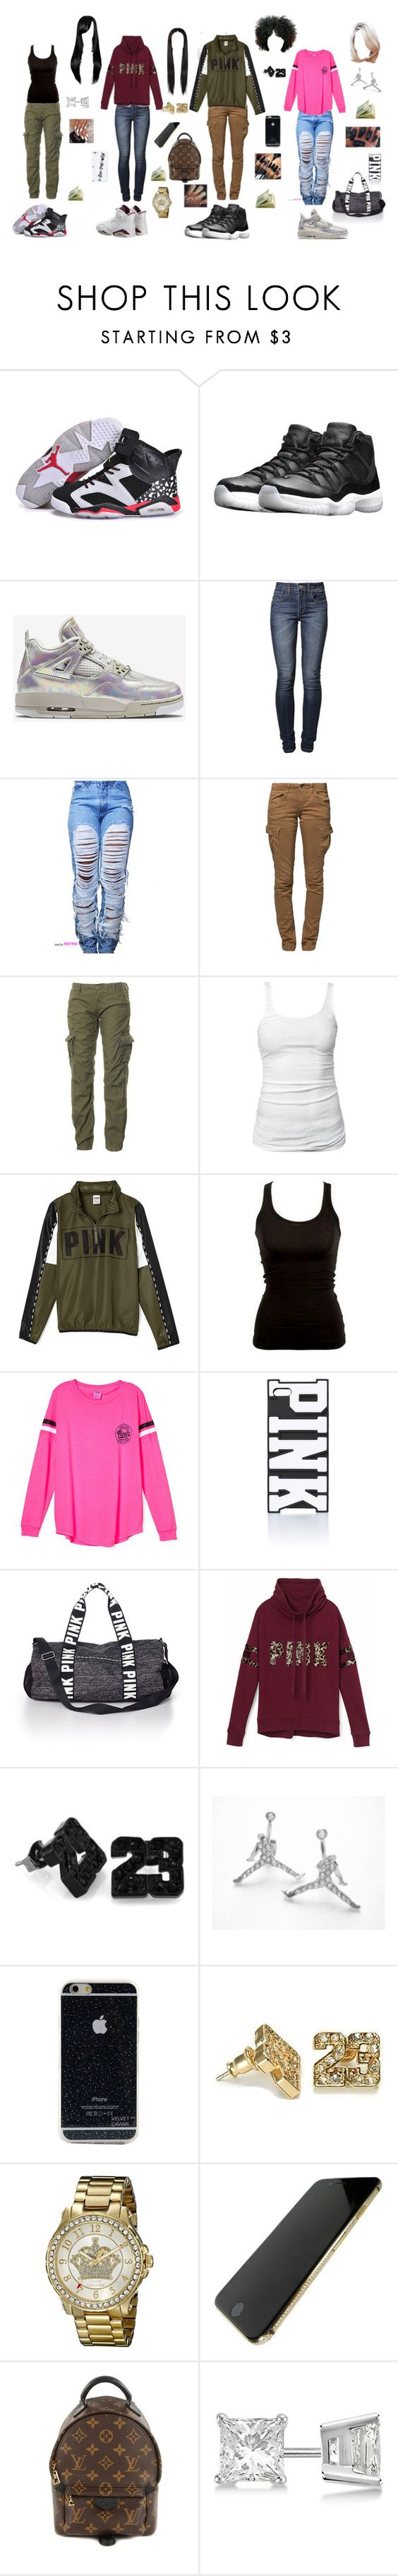 """California "" by that-trendy-jetsetter ❤ liked on Polyvore featuring NIKE, Retrò, Levi's, G-Star Raw, Superdry, James Perse, Victoria's Secret PINK, CO, Juicy Couture and Louis Vuitton"